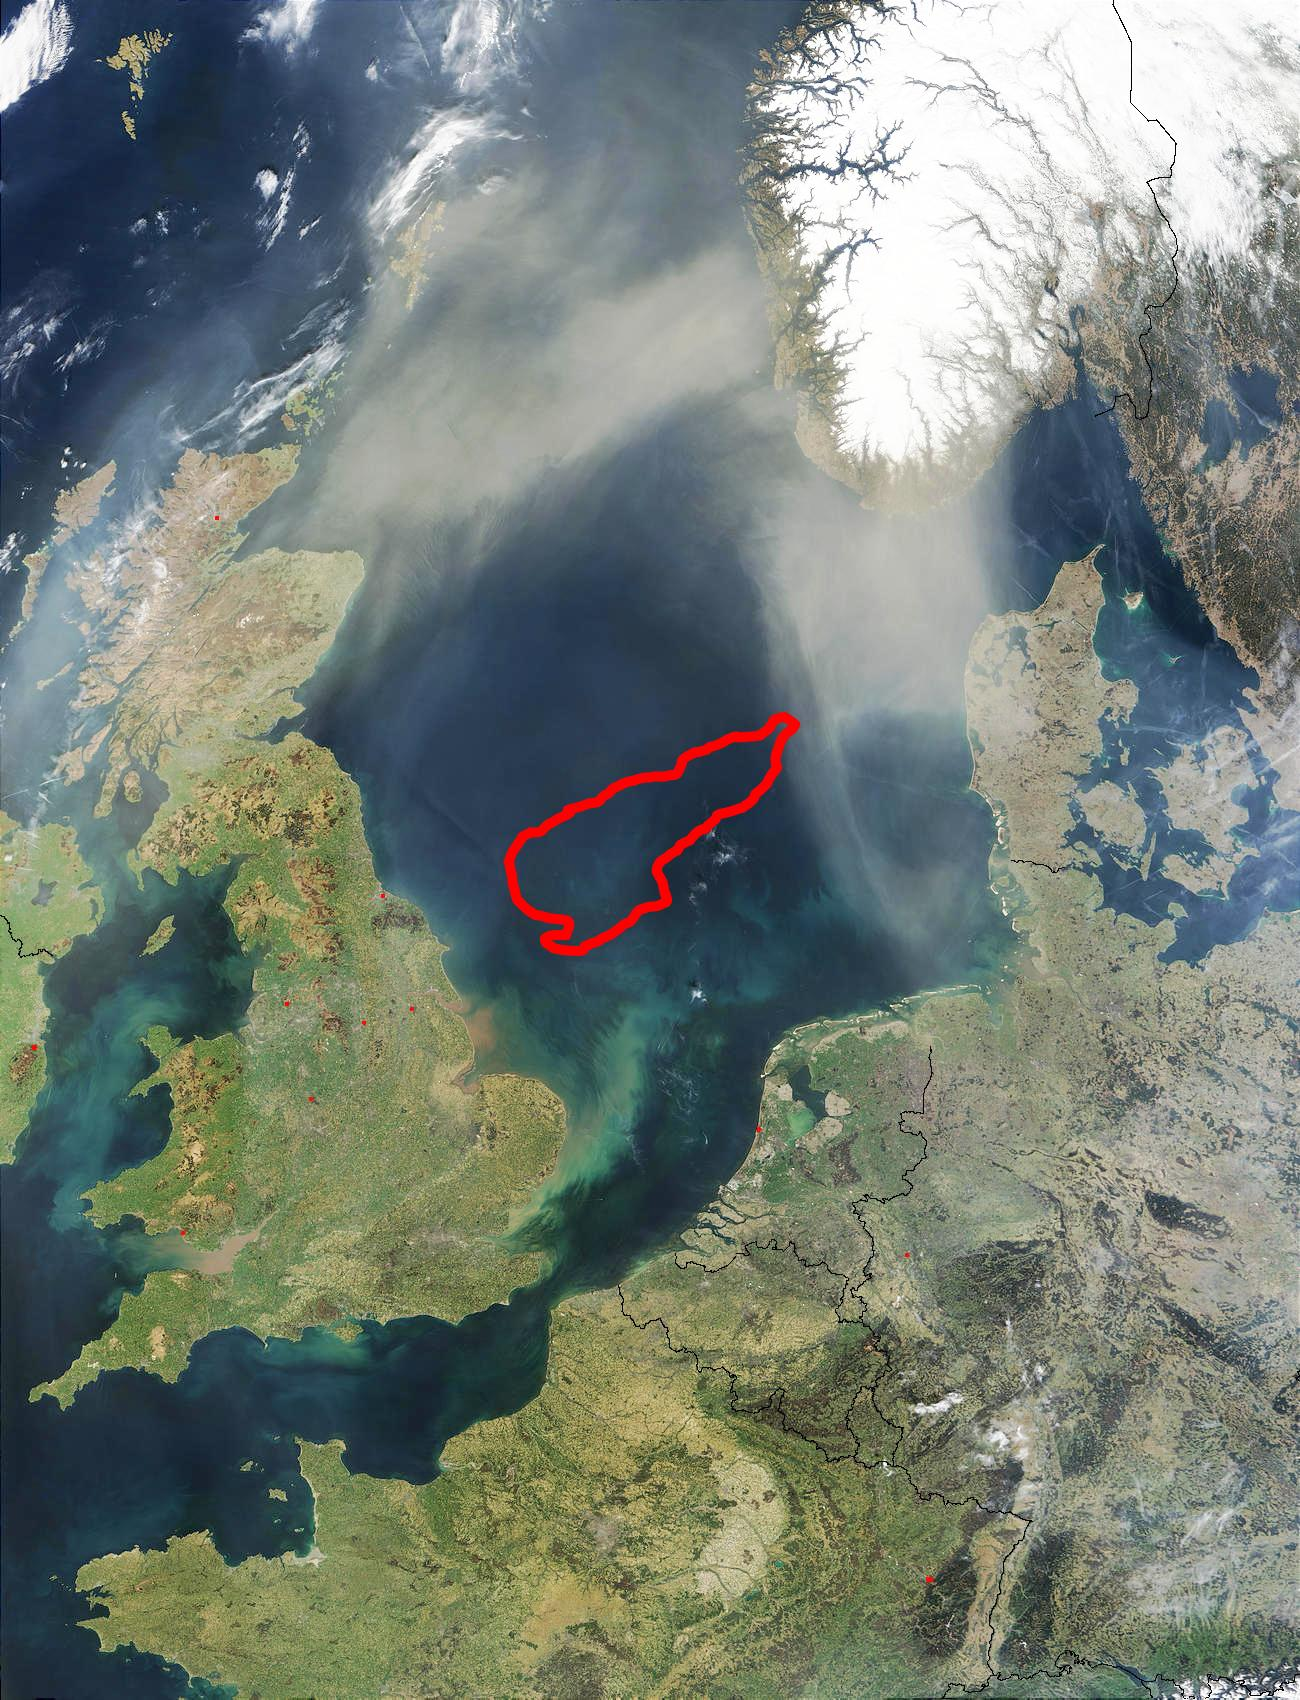 The circled area is Doggerbank, that as a land mass once connected England to the Netherlands.